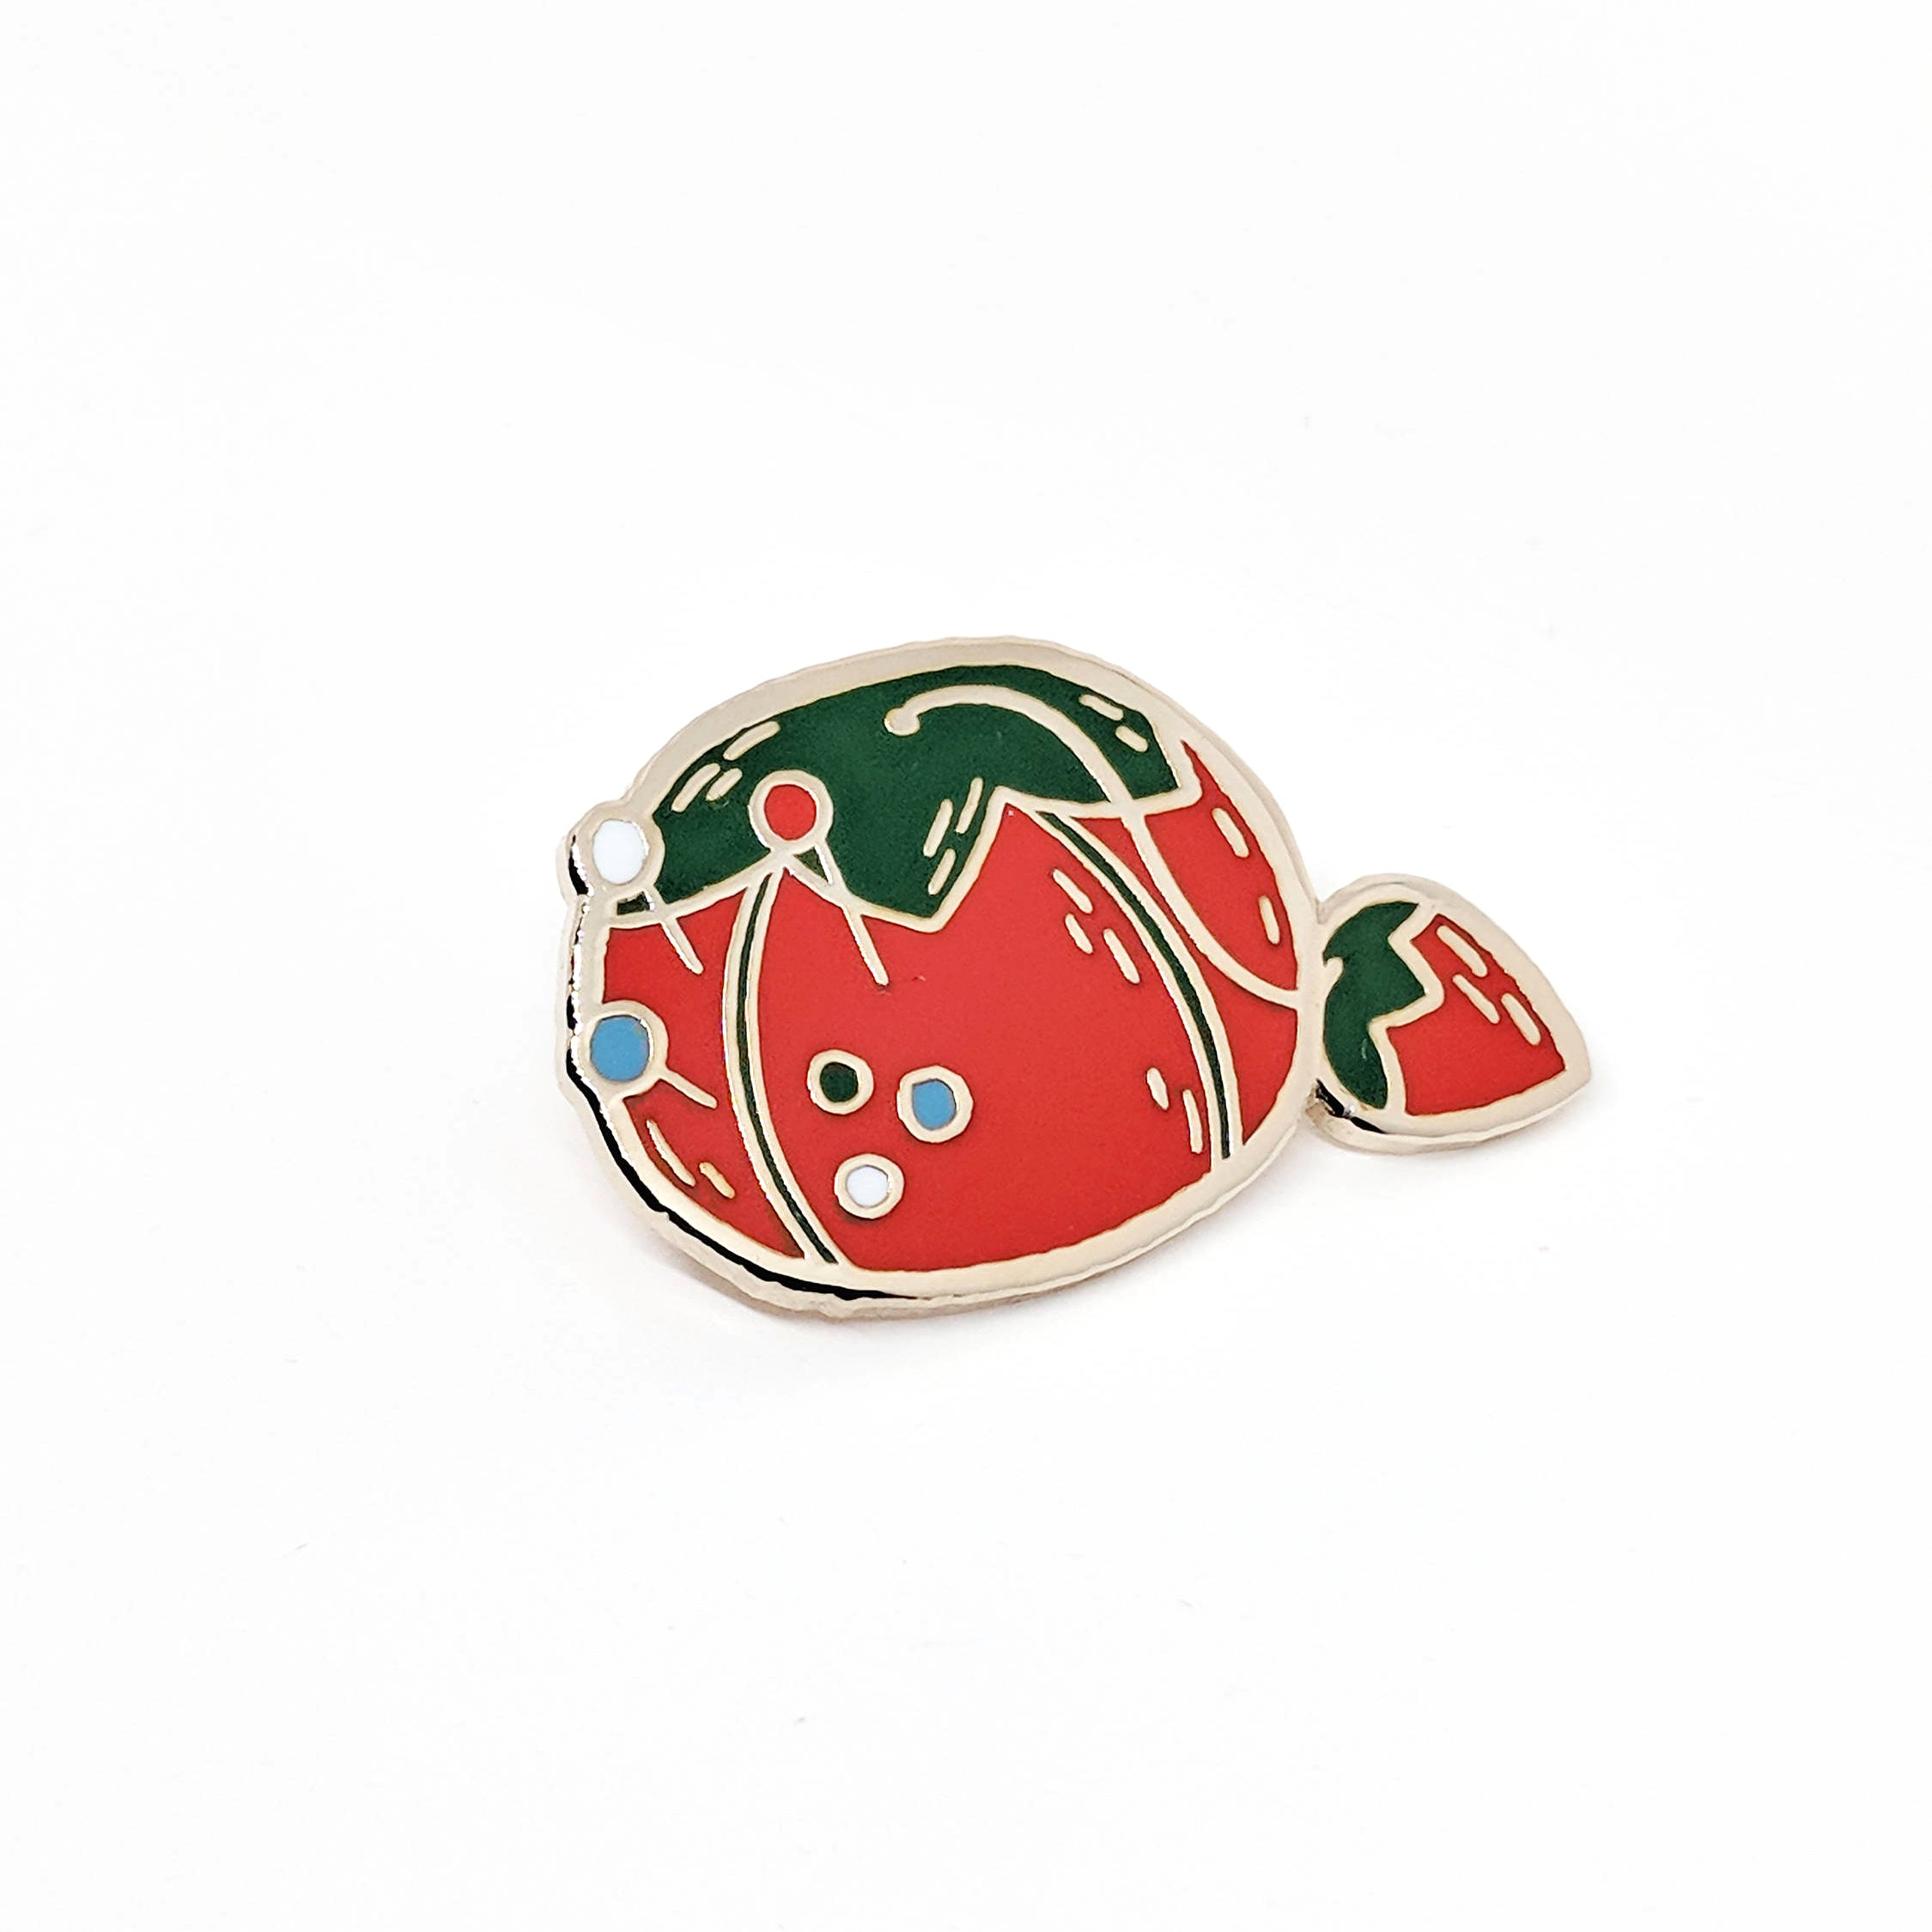 Justine Gilbuena - Tomato Pin Cushion Pin